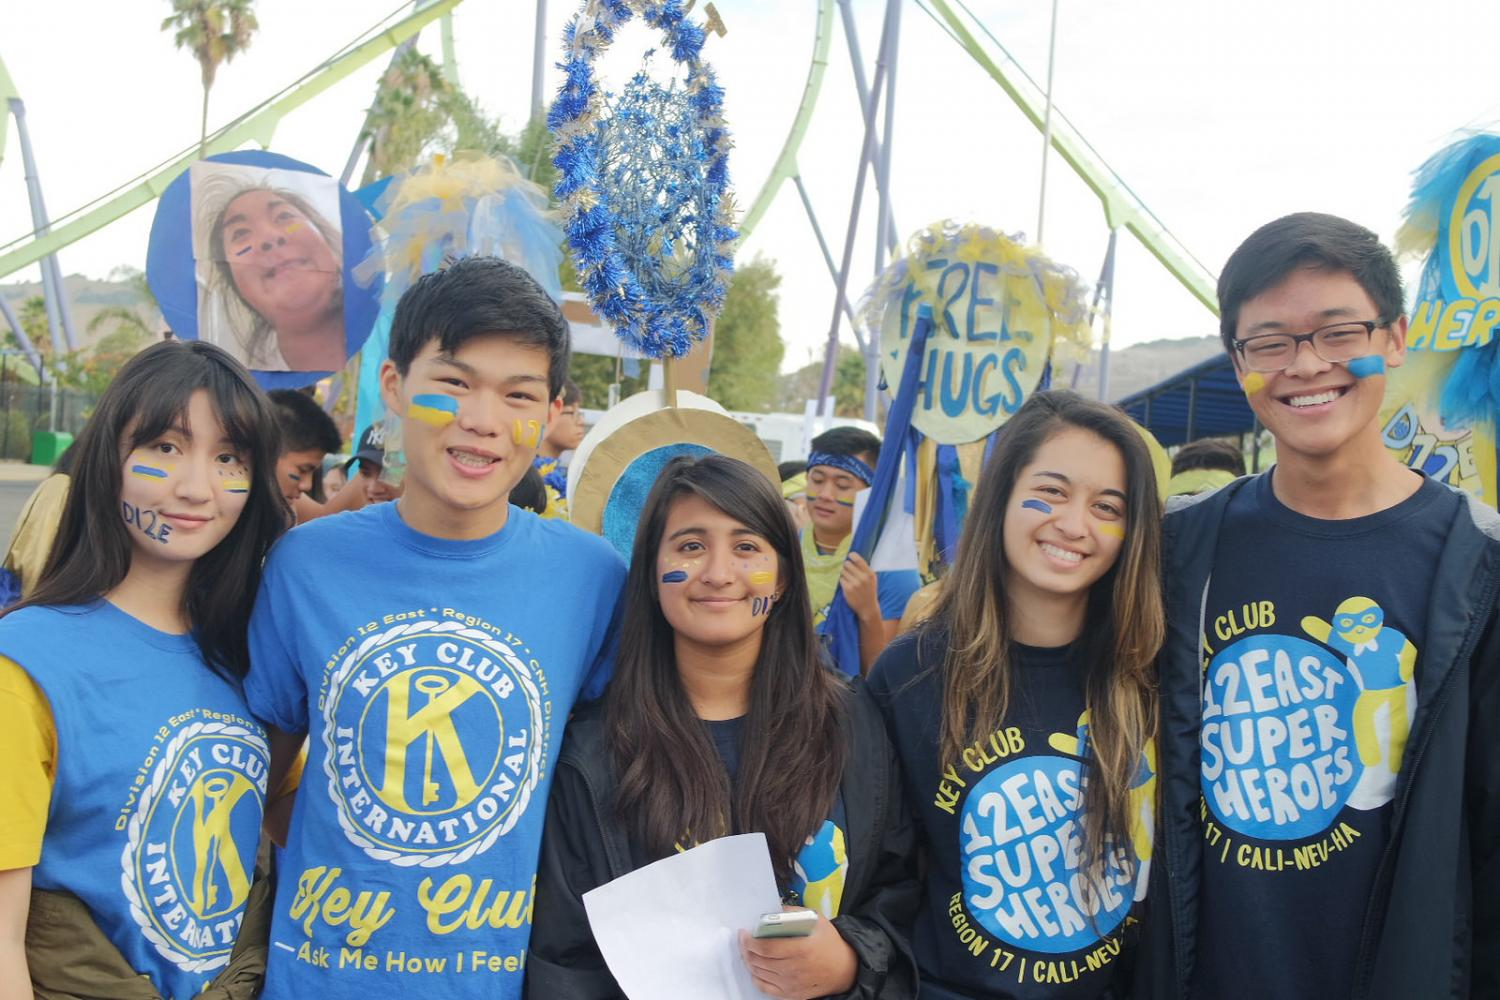 Key Clubbers pose before going to the rally. Irvington's Key Club held its annual Fall Rally North (FRN) spirit bootcamp at Six Flags Discovery Kingdom on Oct. 22, in which Key Clubbers bond with other members, get spirit, and kick off the year. Members from all of northern California rallied and showed off their spirit at the amusement park.